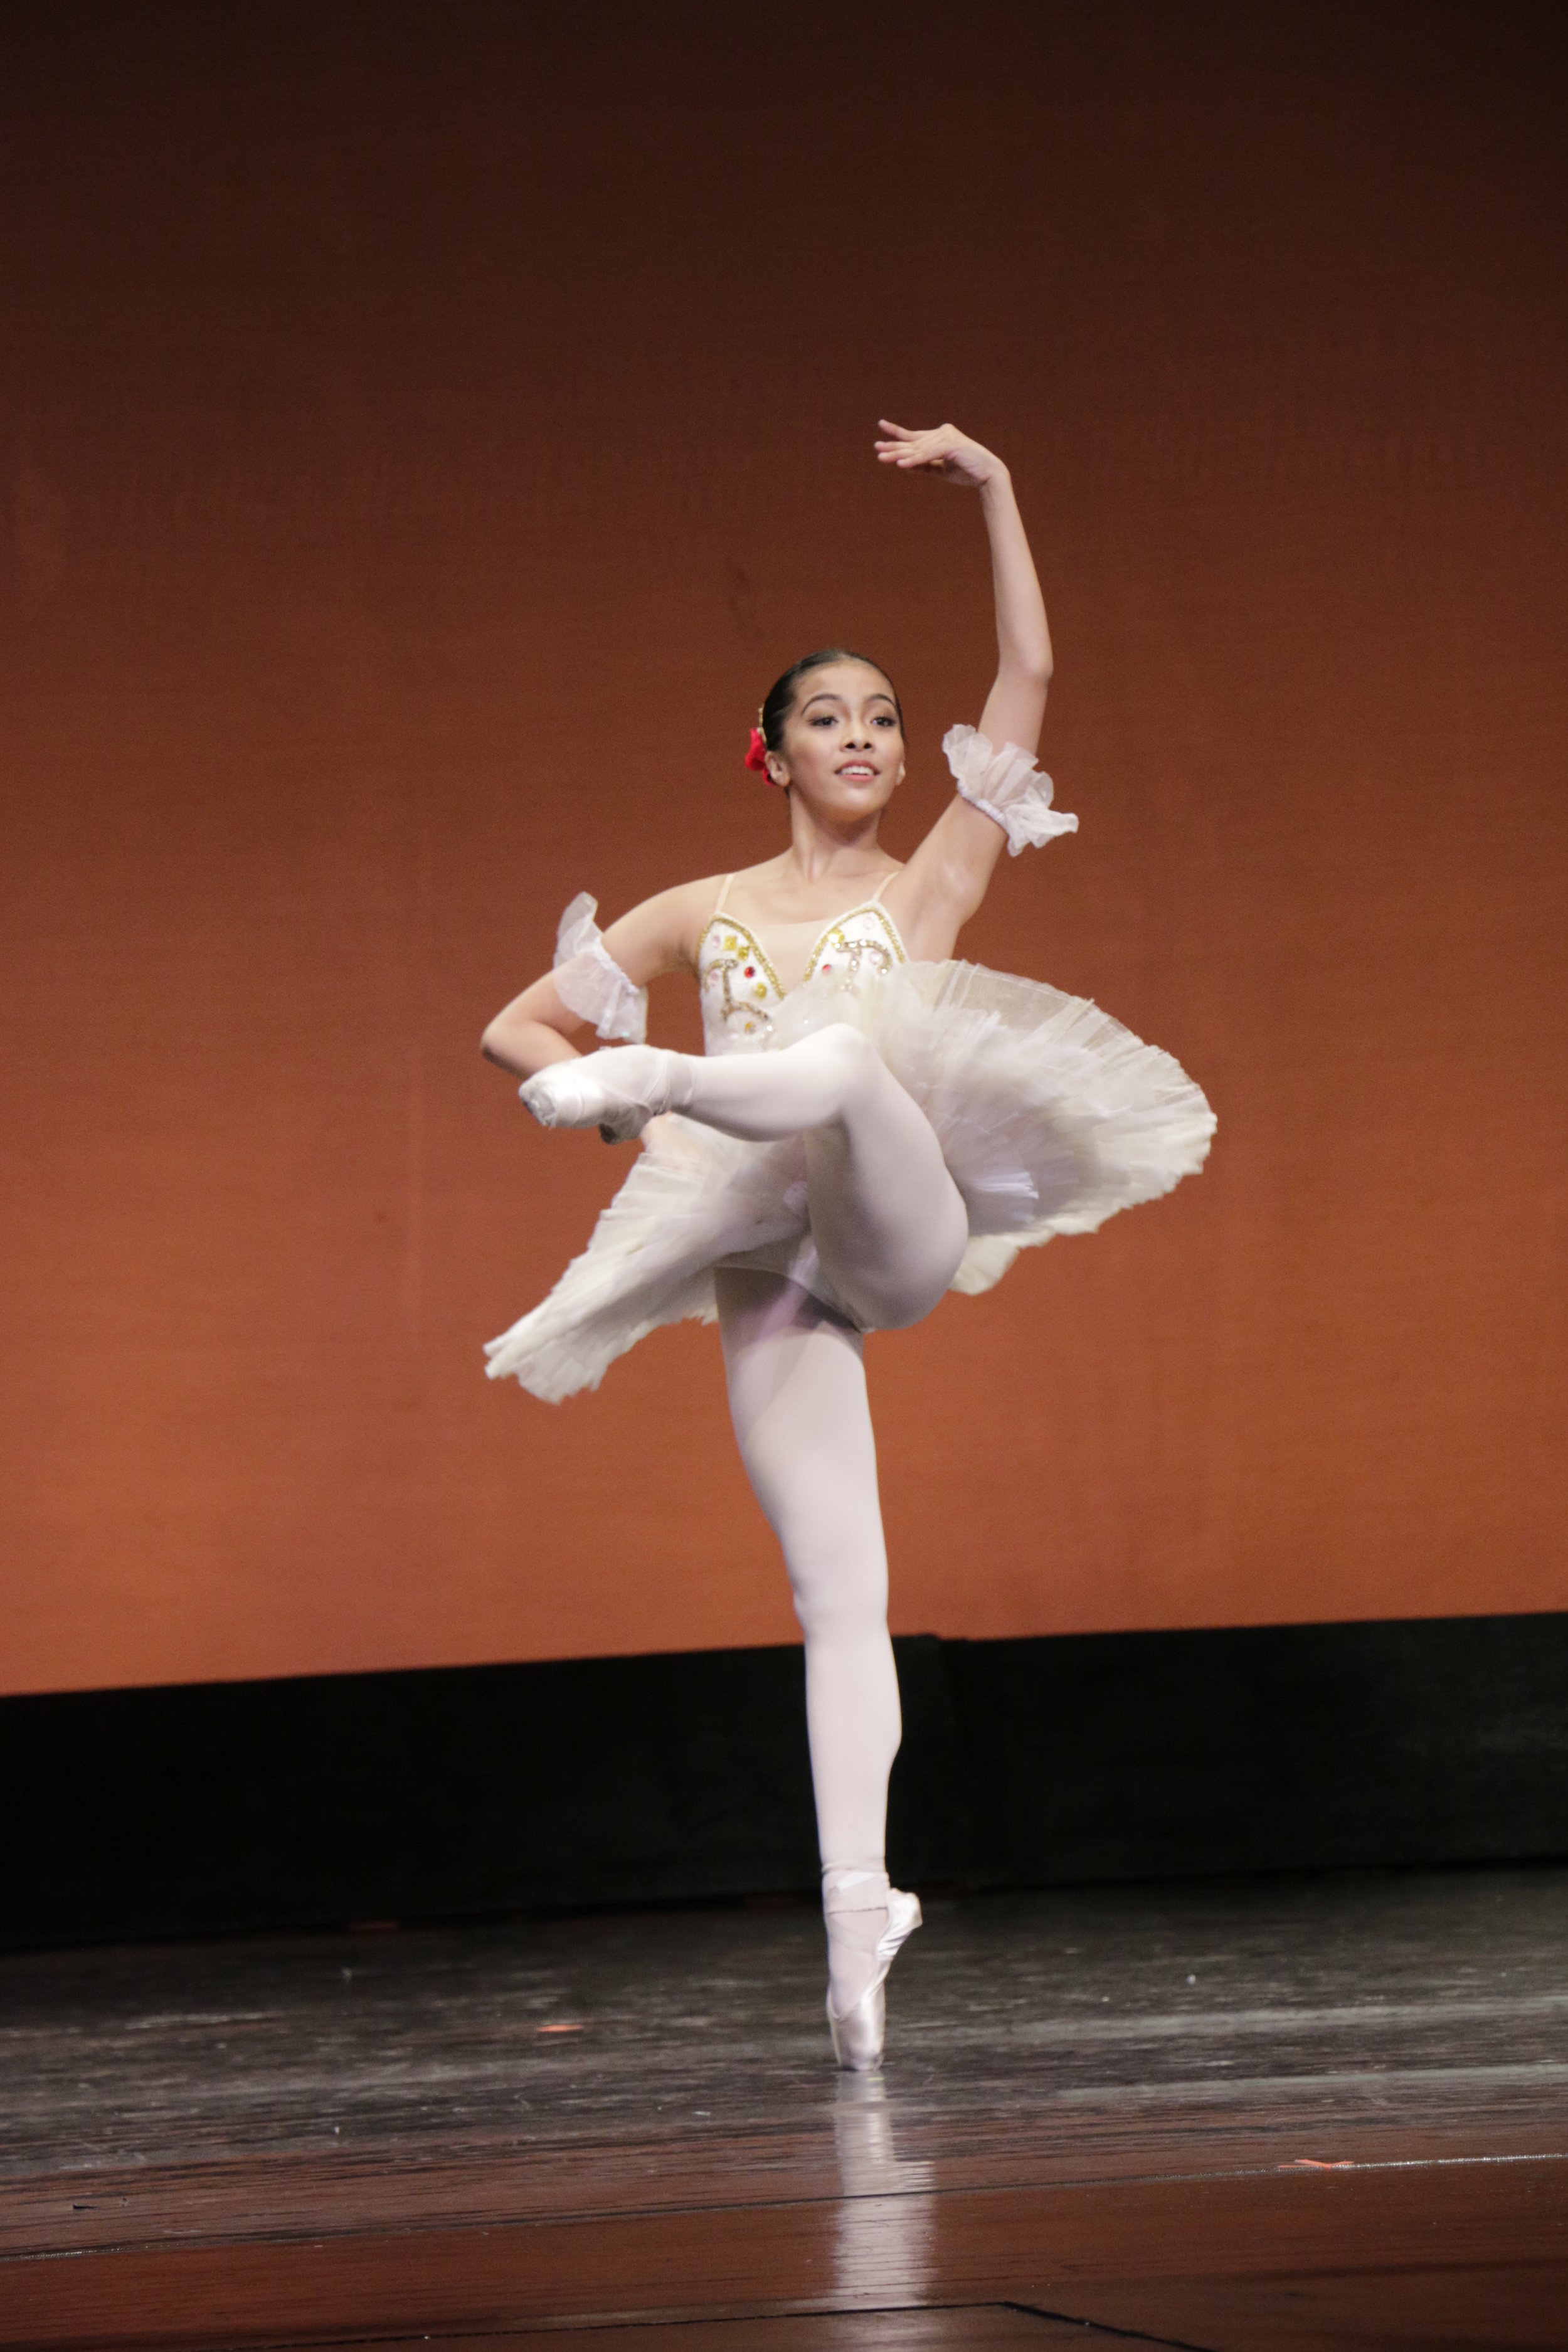 At 16, Neeka already counts several ballet awards to her name including first-place finish in the CCP Ballet Competition in 2016. Photo by Kiko Cabuena courtesy of CCP